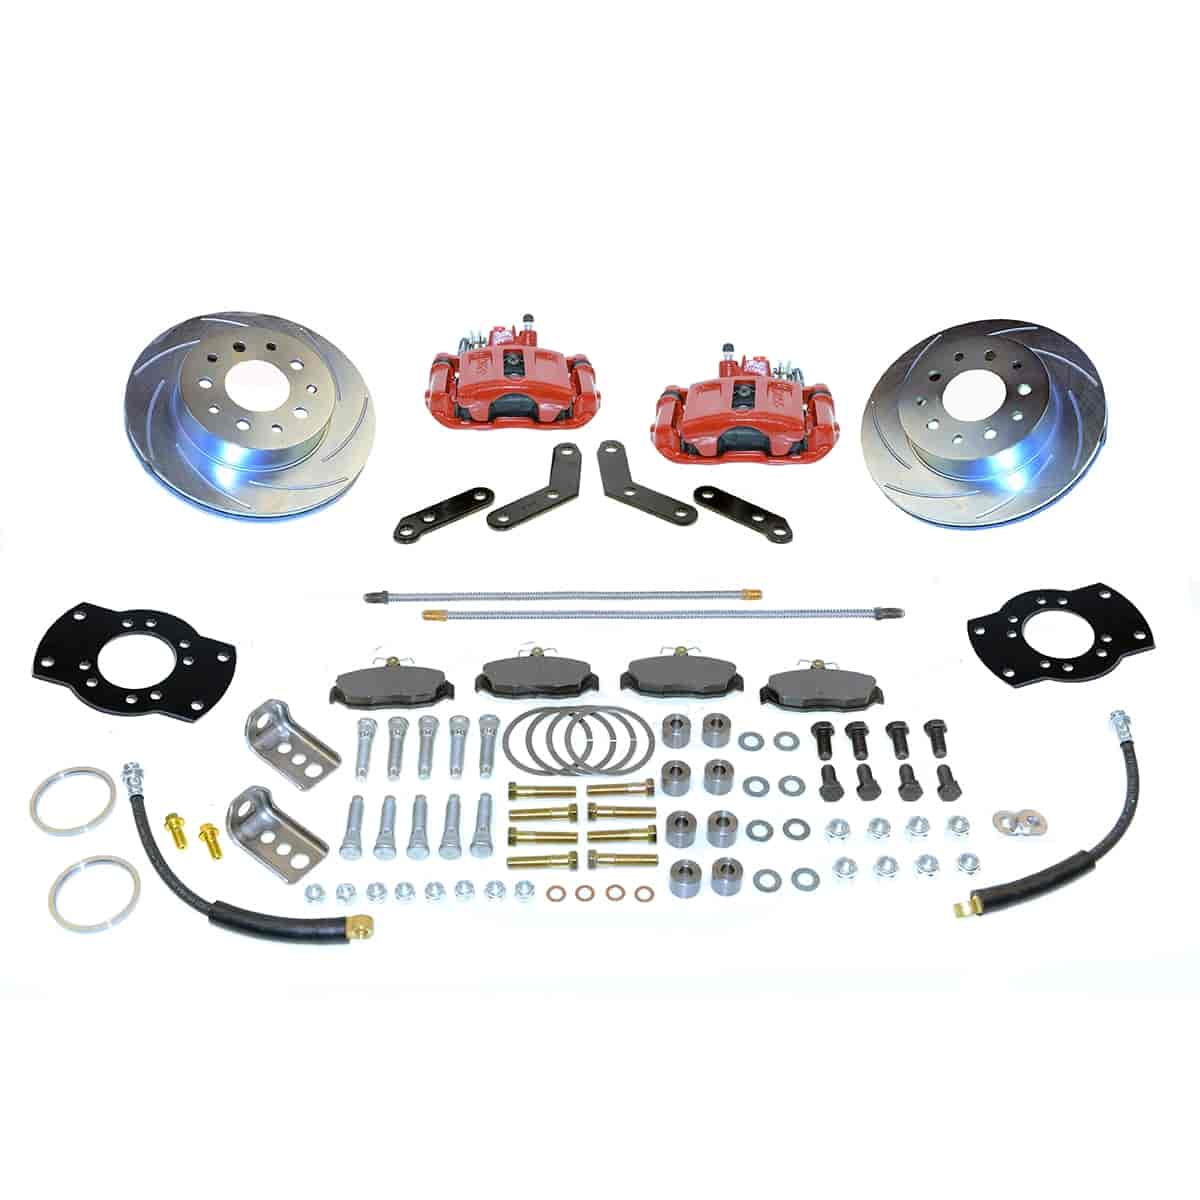 Stainless Steel Brakes A117R - Stainless Steel Brakes Single Piston Rear Drum to Disc Brake Conversion Kits